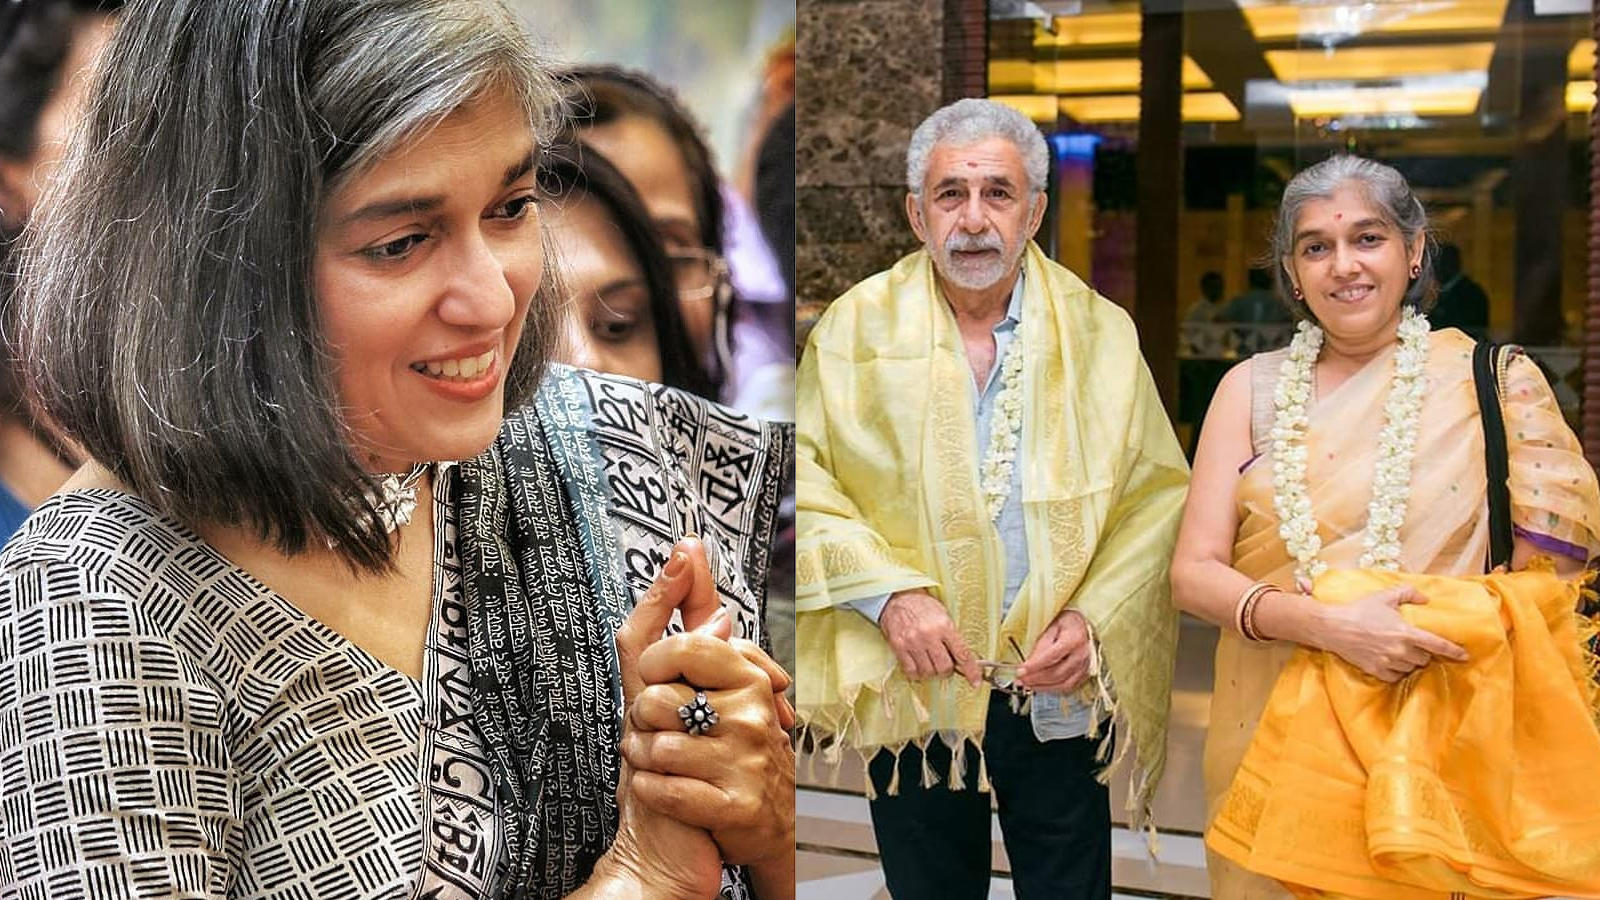 naseeruddin-shah-reveals-his-mother-asked-him-if-he-wants-his-wife-ratna-pathak-to-convert-to-his-religion-post-marriage-share-his-concerns-over-love-jihad